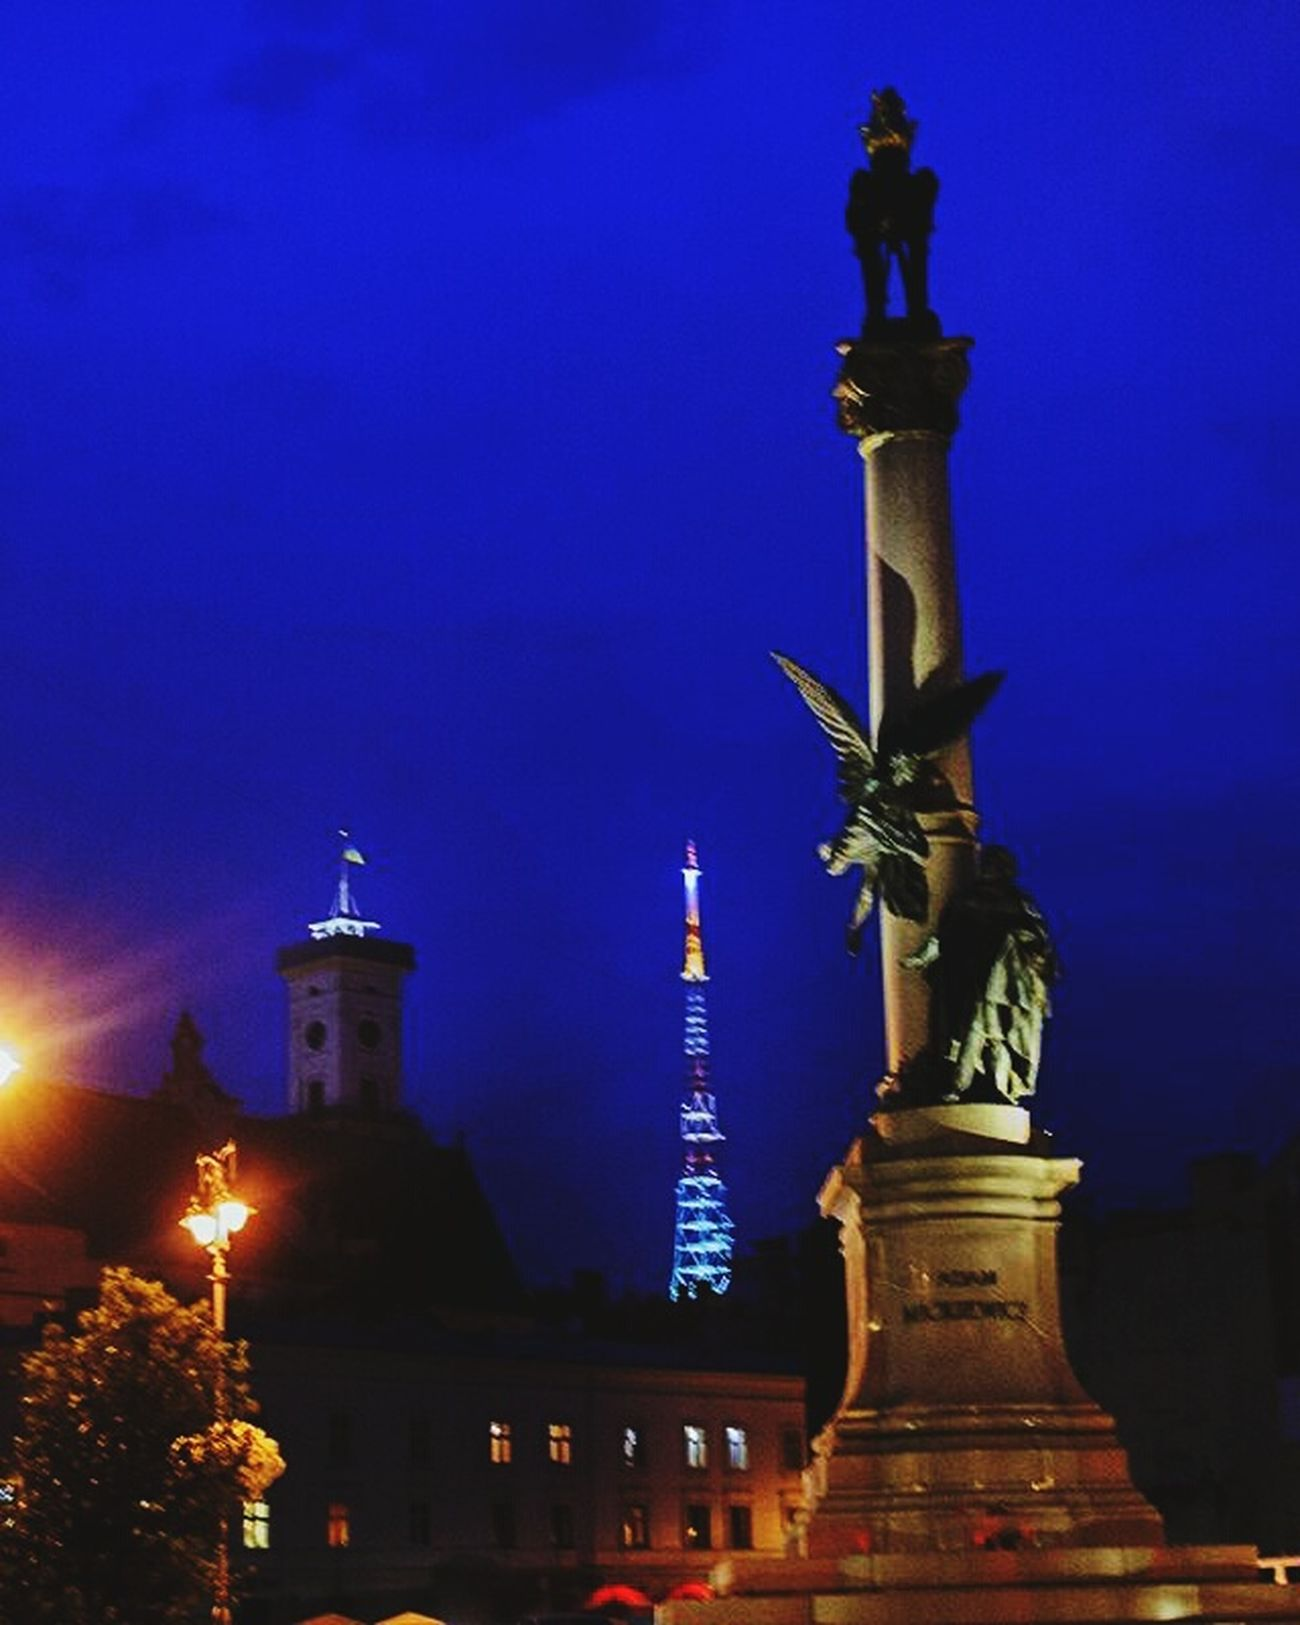 Statue Architecture Sculpture Illuminated Famous Place Sky City Life City Vscoua VSCO Vscocam Vscogram Vscogood Lviv Lviv, Ukraine Lviving Lviv1256 Lvivgram Lvivblog Lvivforyou Battle Of The Cities